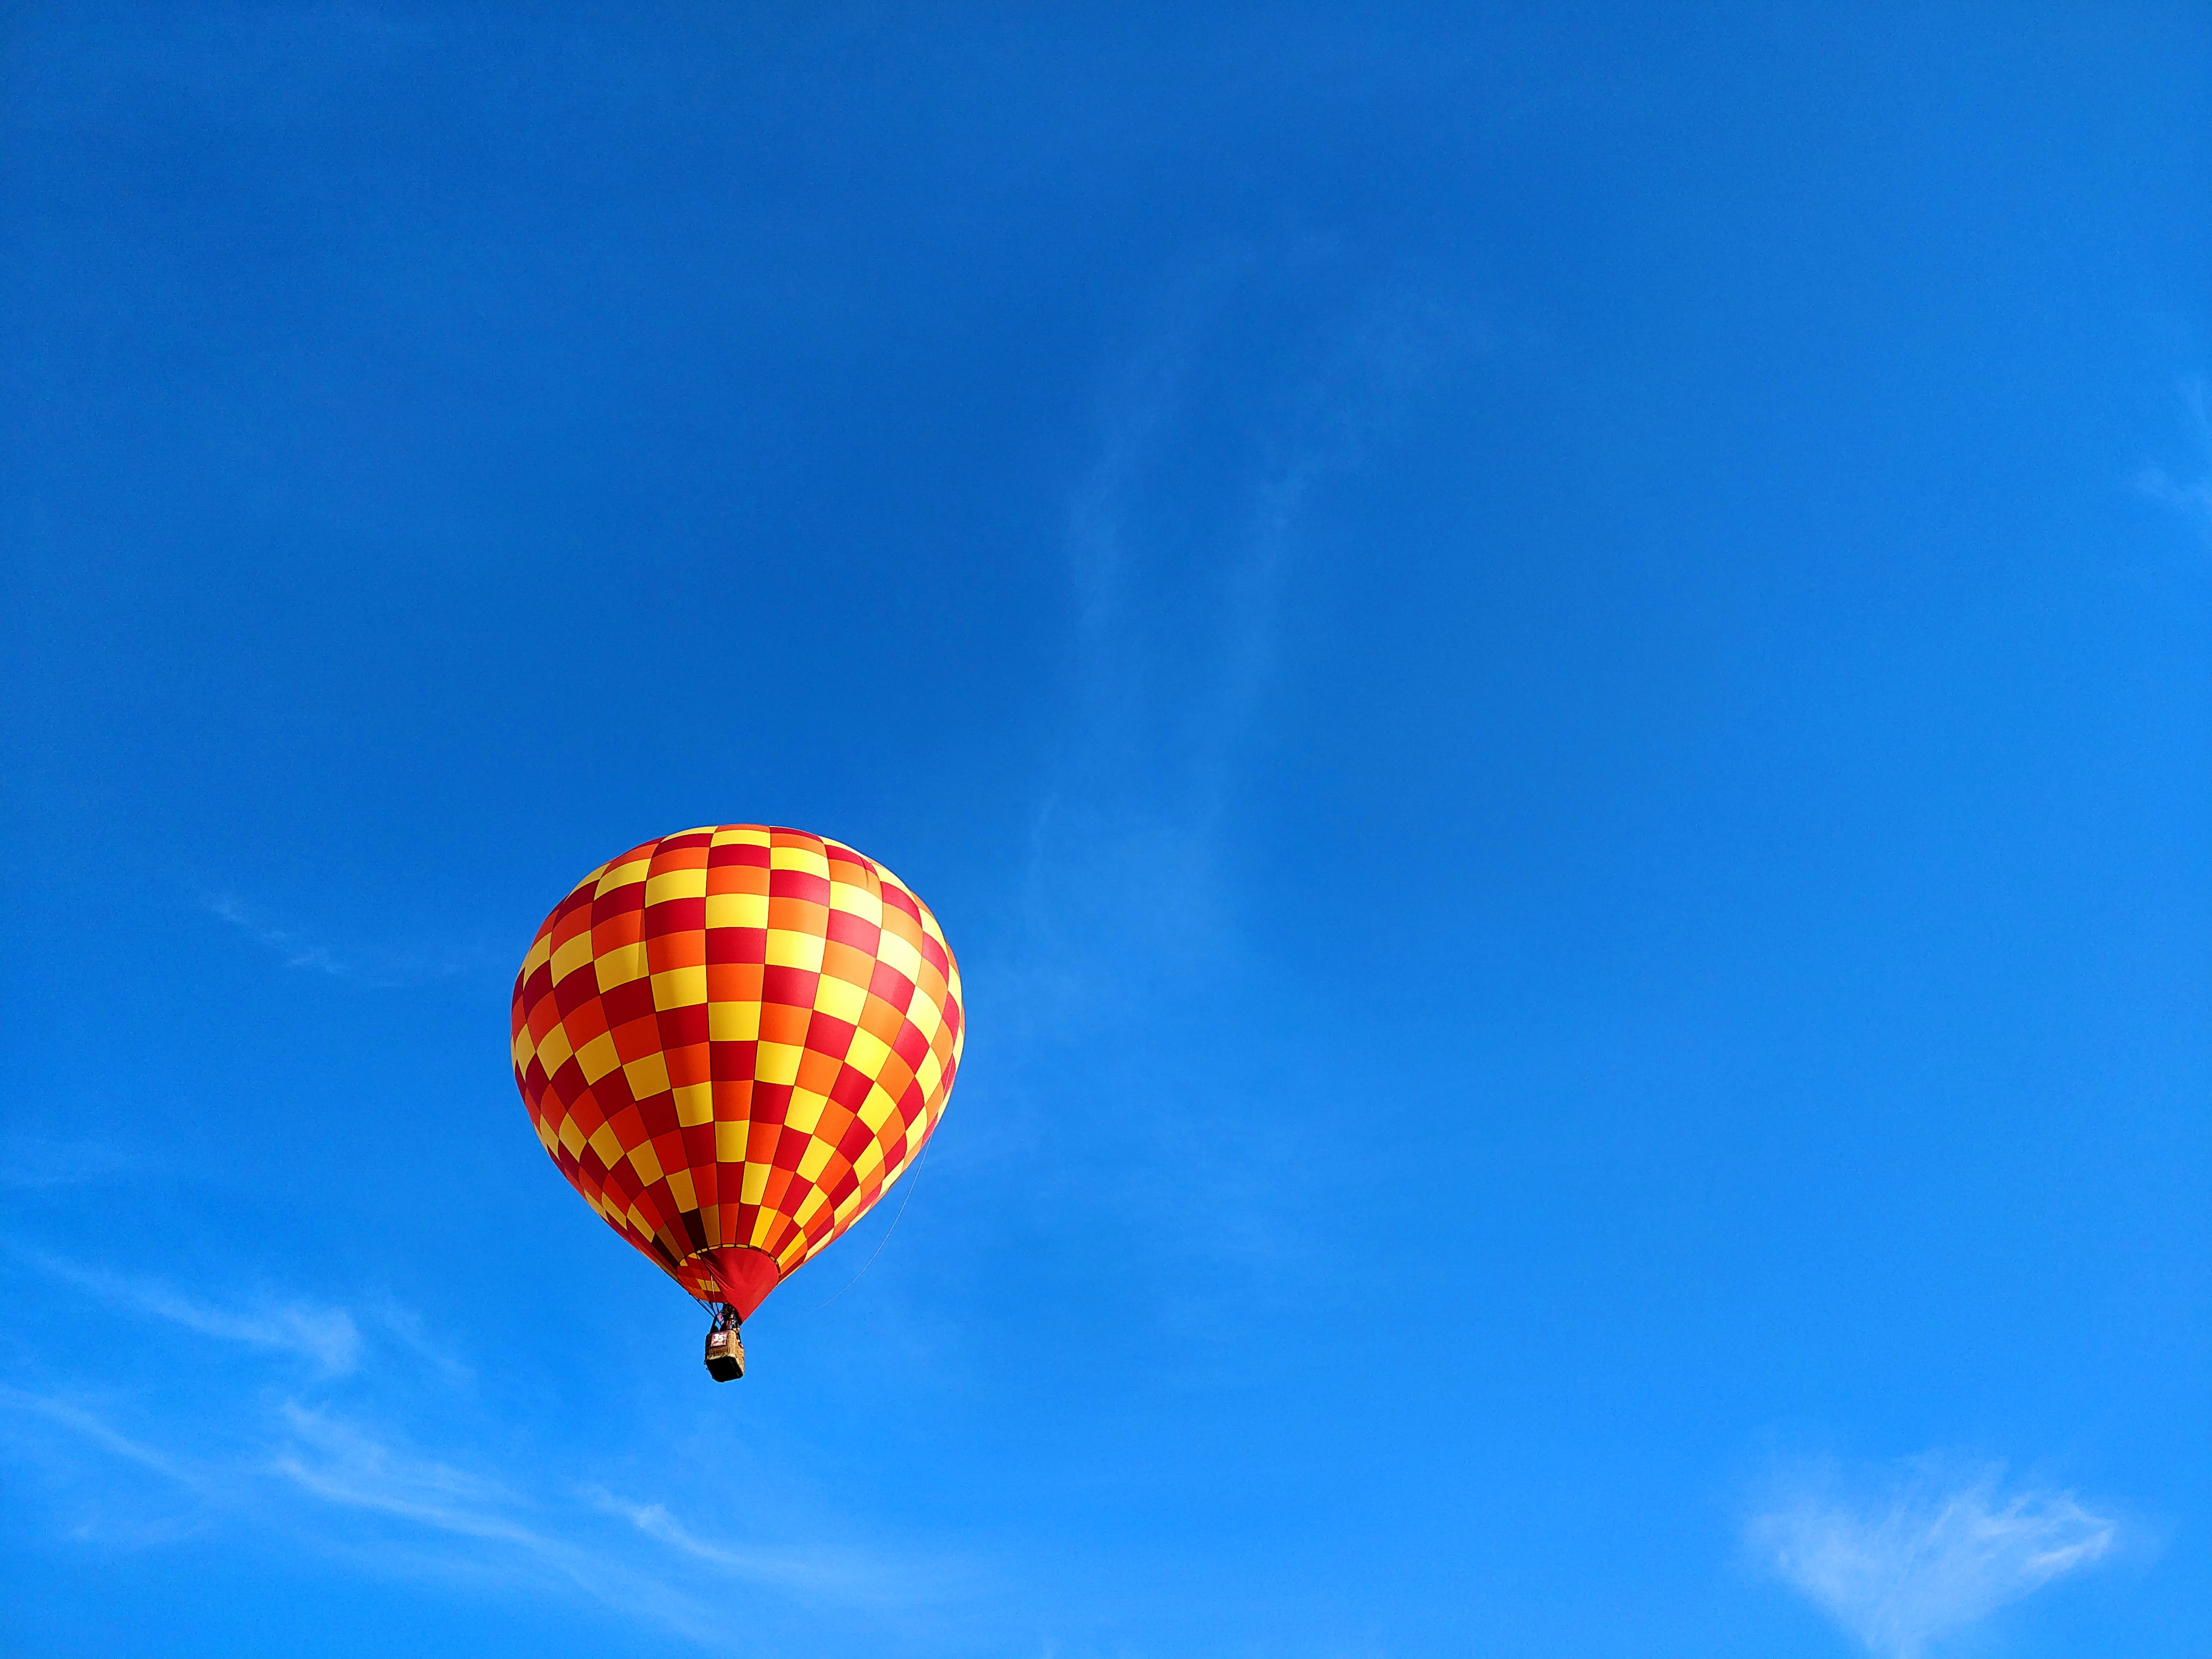 red and yellow checkered hot air balloon